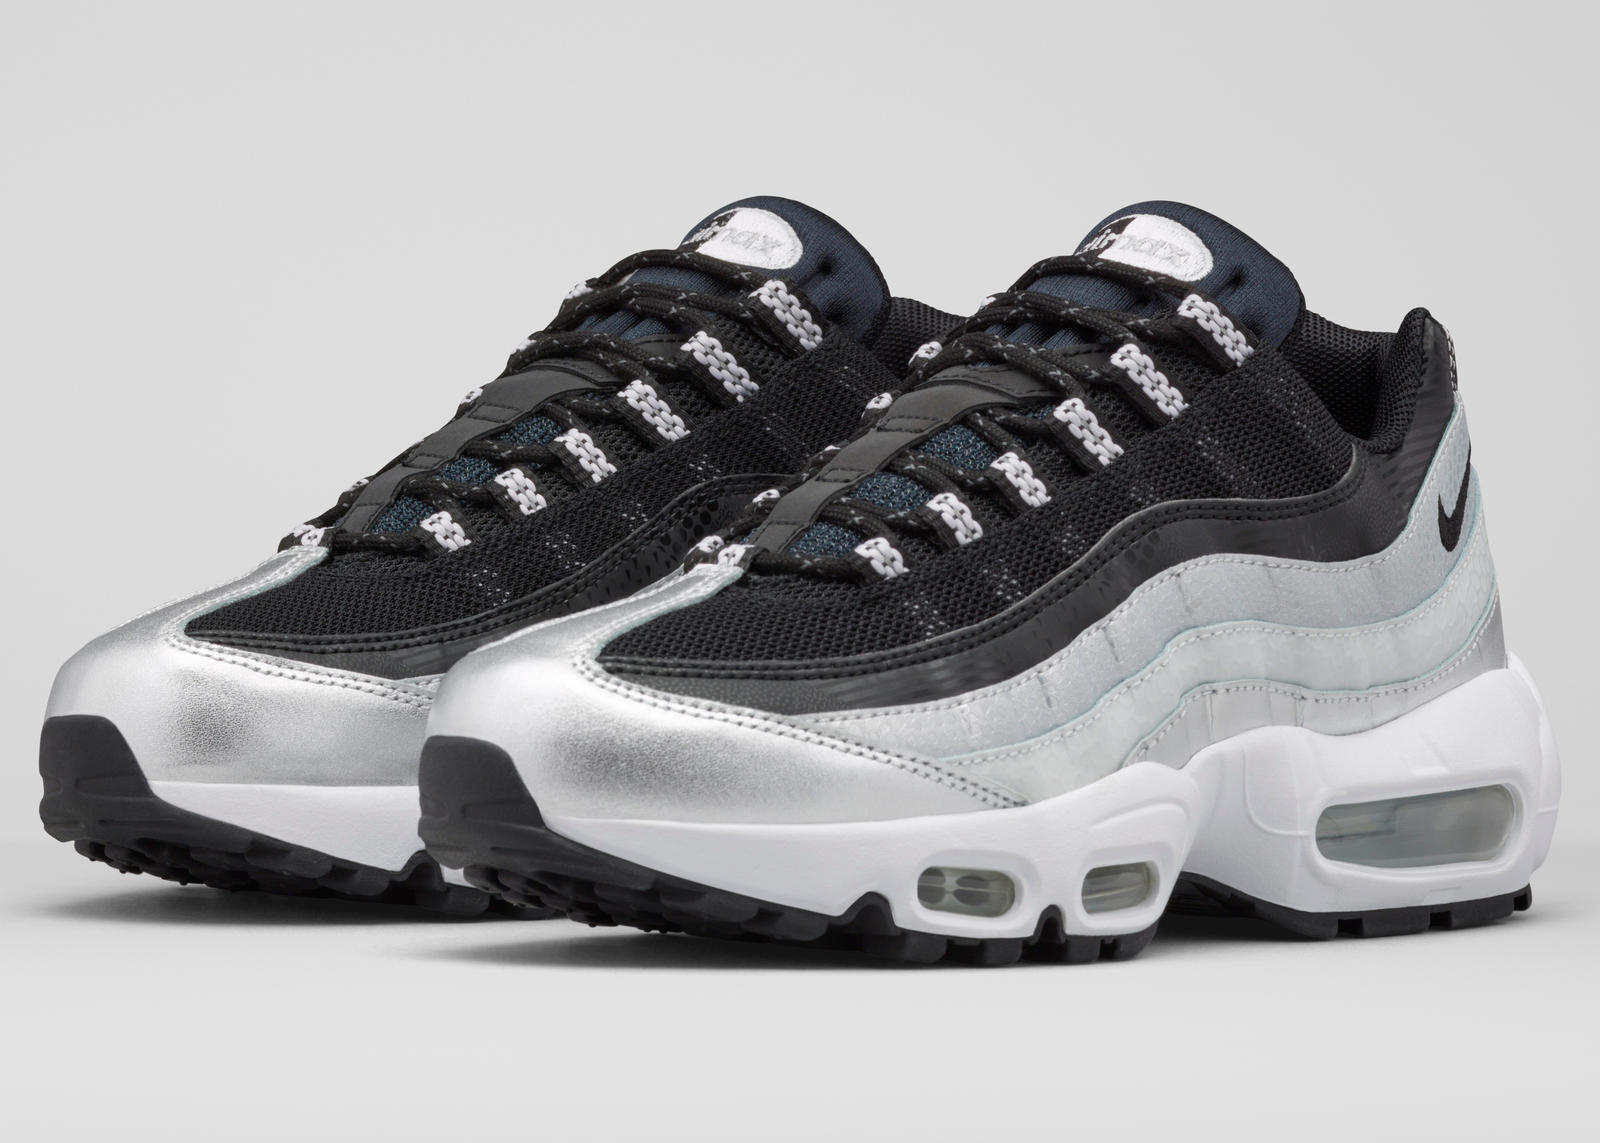 Cheap Nike Air Max 95 (Black/Black Anthracite) Consortium.